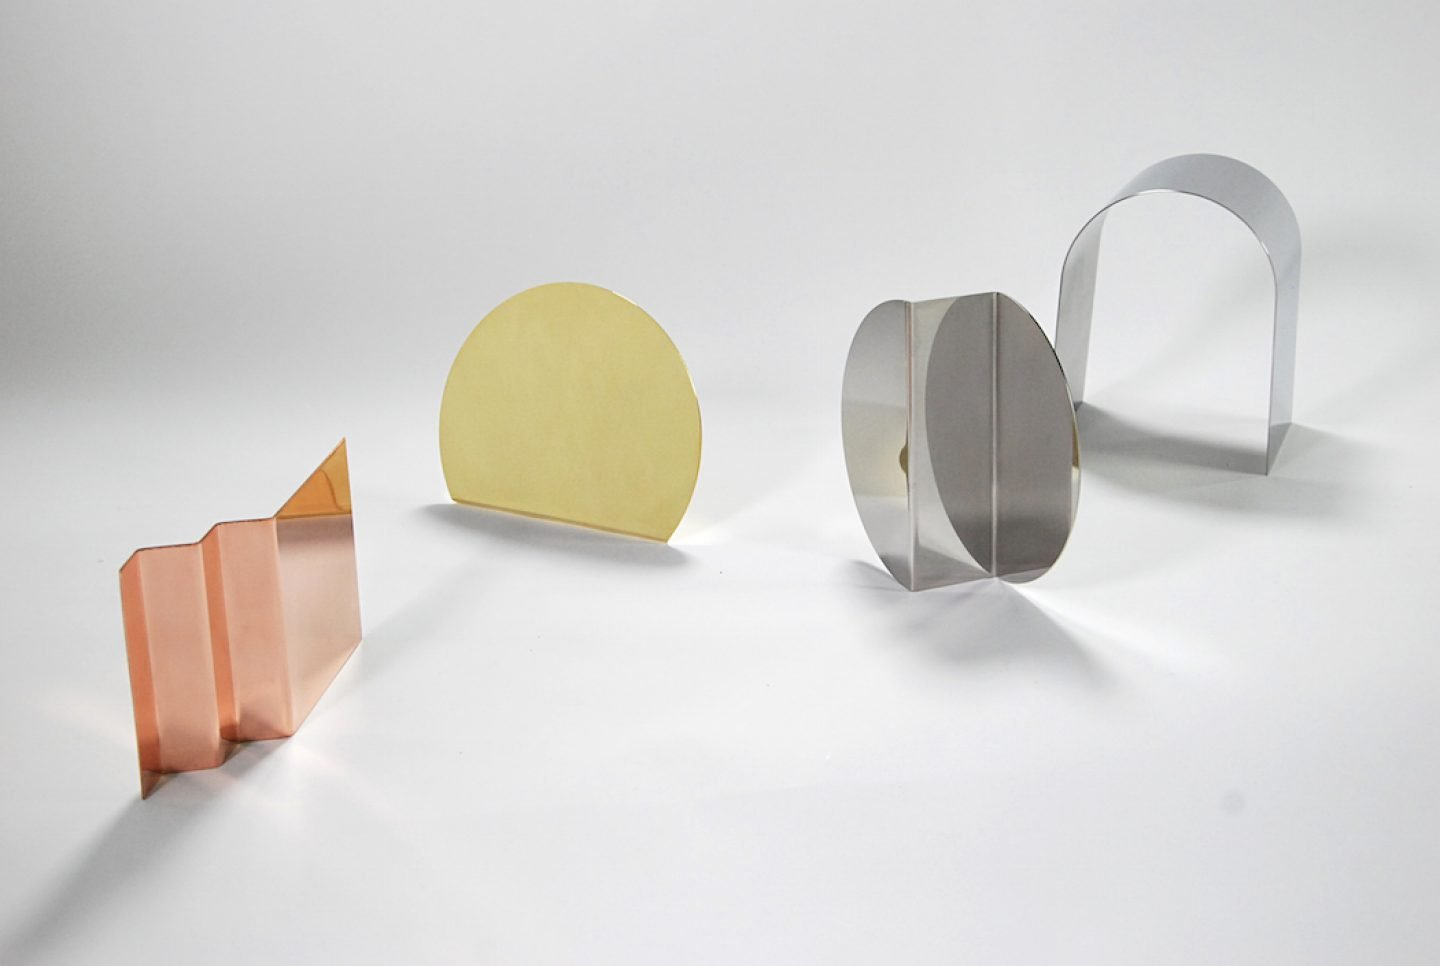 ninacho_design-Bent Mirror Series by Nina Cho3